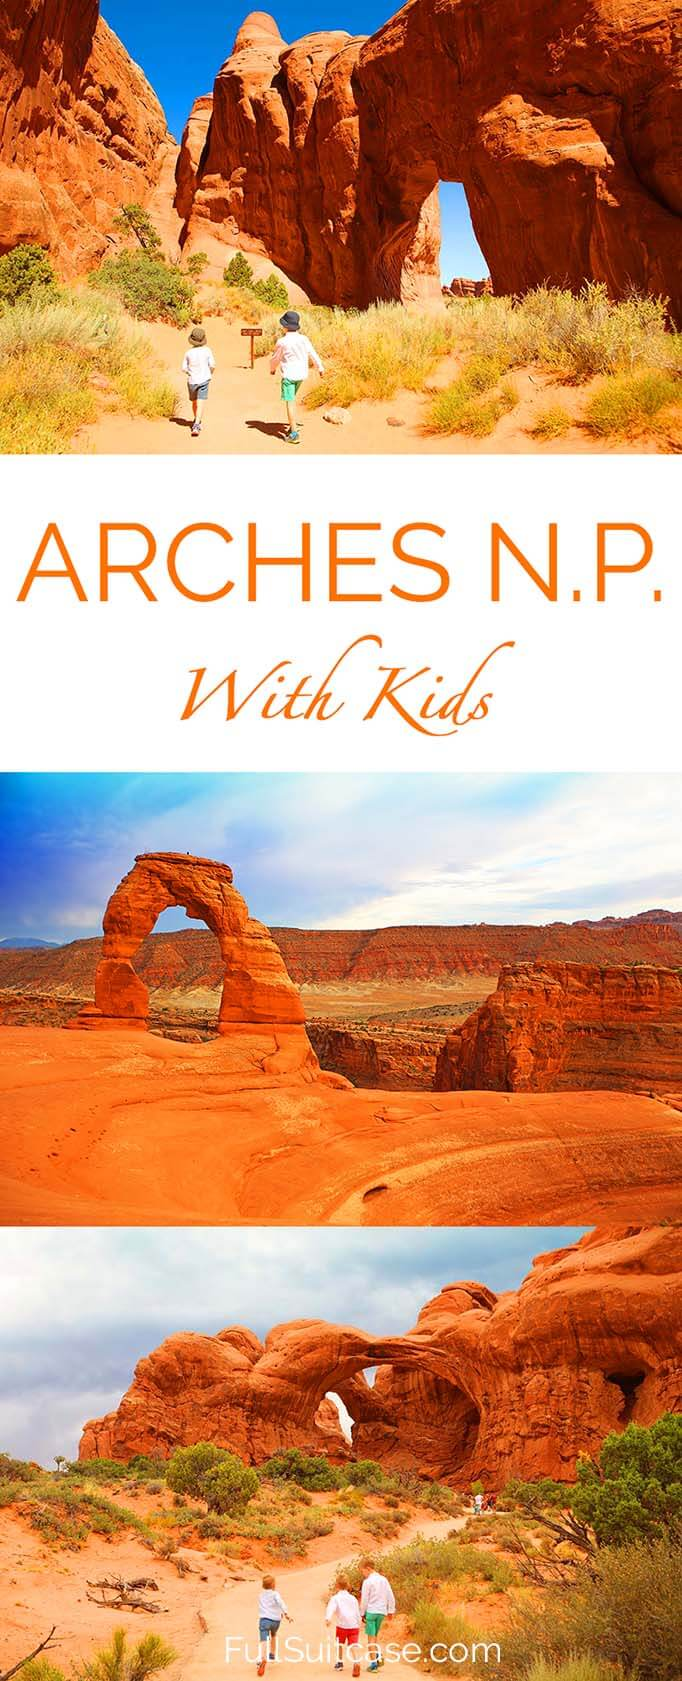 Complete guide to visiting Arches National Park with children - Utah, United States